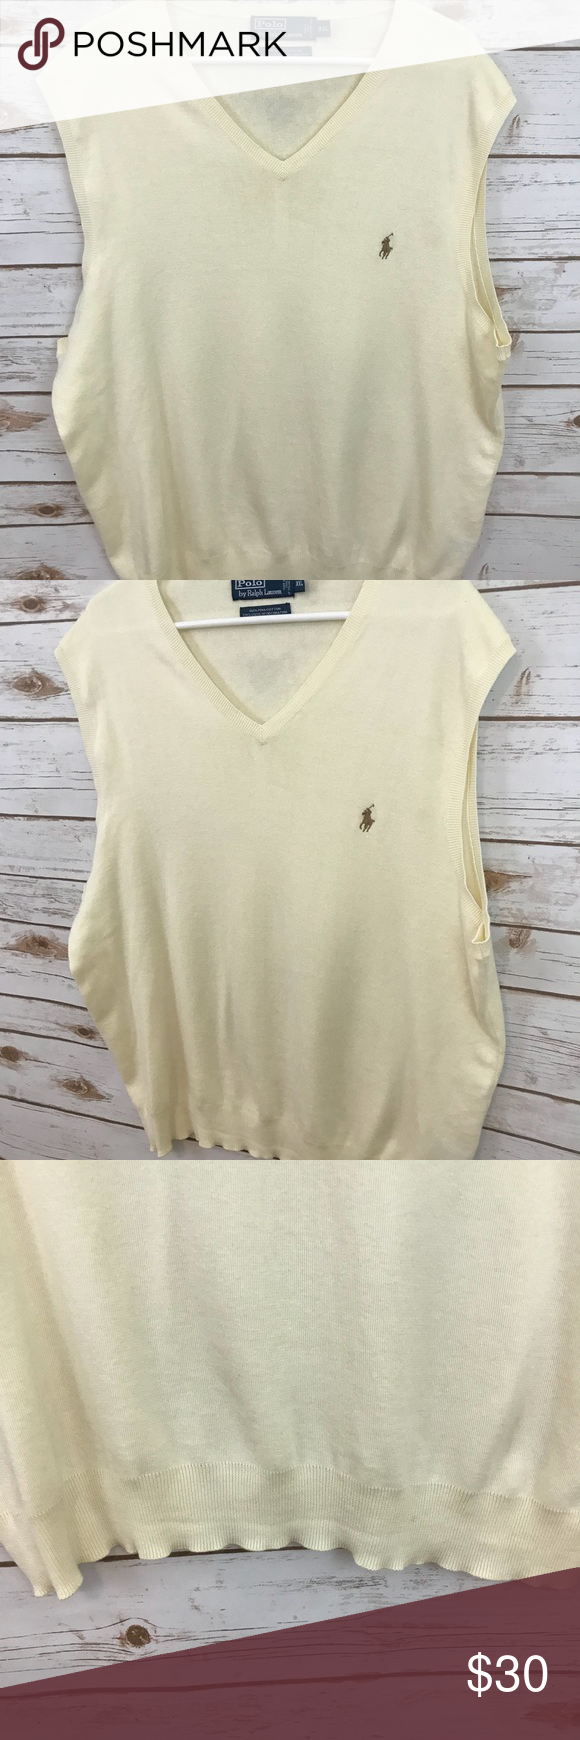 POLO by Ralph Lauren Ivory Sweater Vest Good, gently pre-owned ...